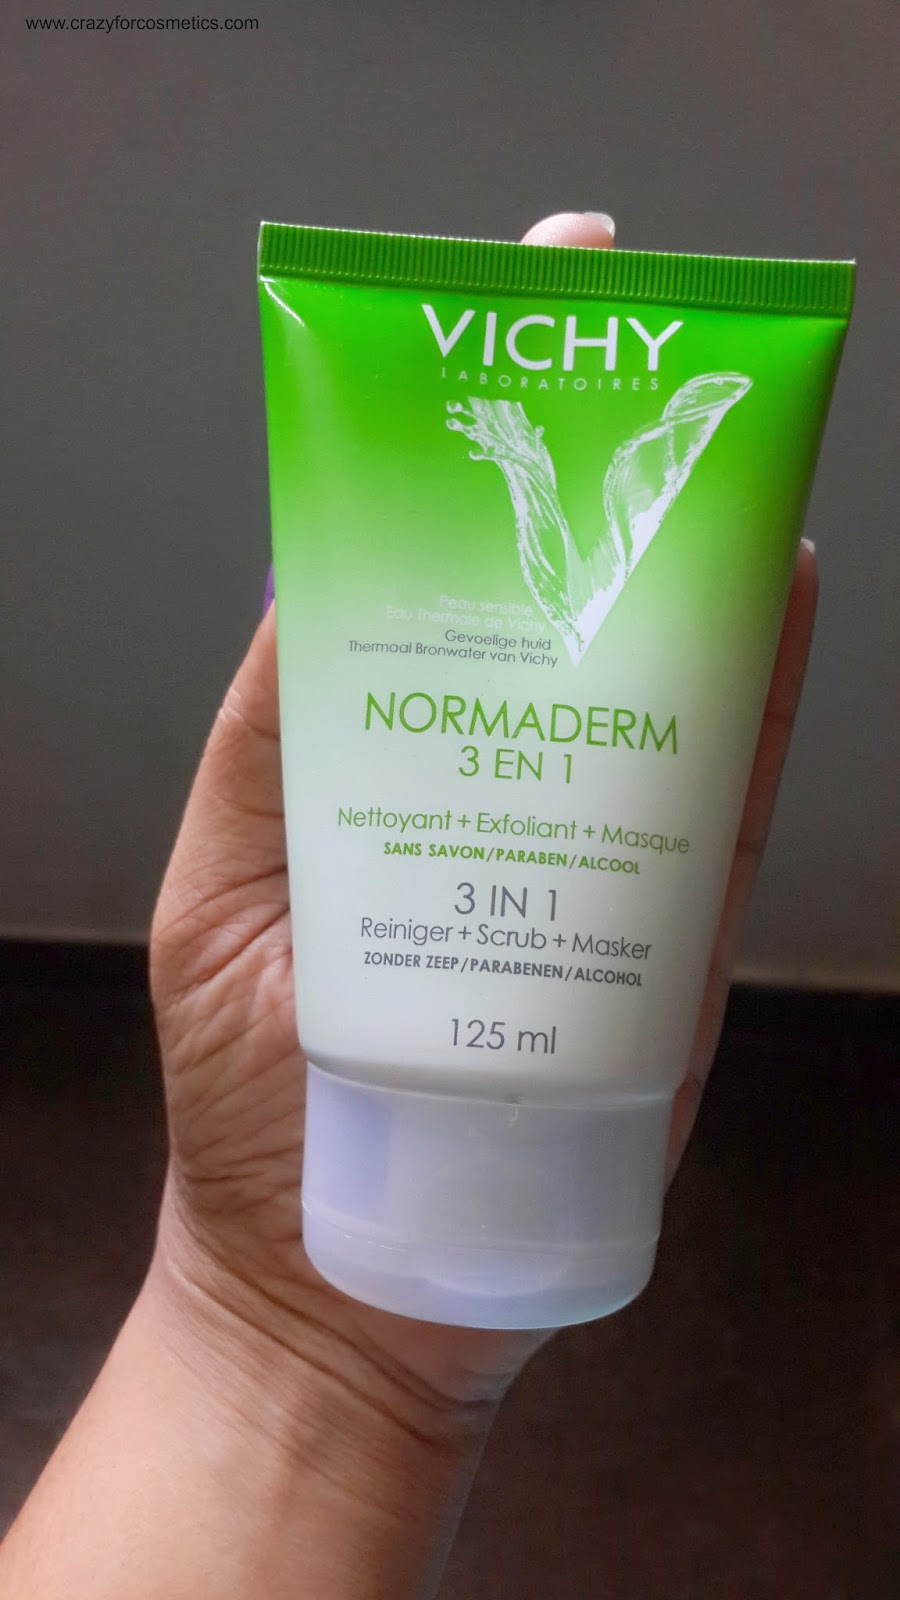 Vichy Normaderm 3 in 1 Cleanser Scrub Face mask review- Vichy 3 in 1 scrub mask review- Vichy 3 in 1 Scrub Face mask price- Vichy skincare range-Vichy Paris products